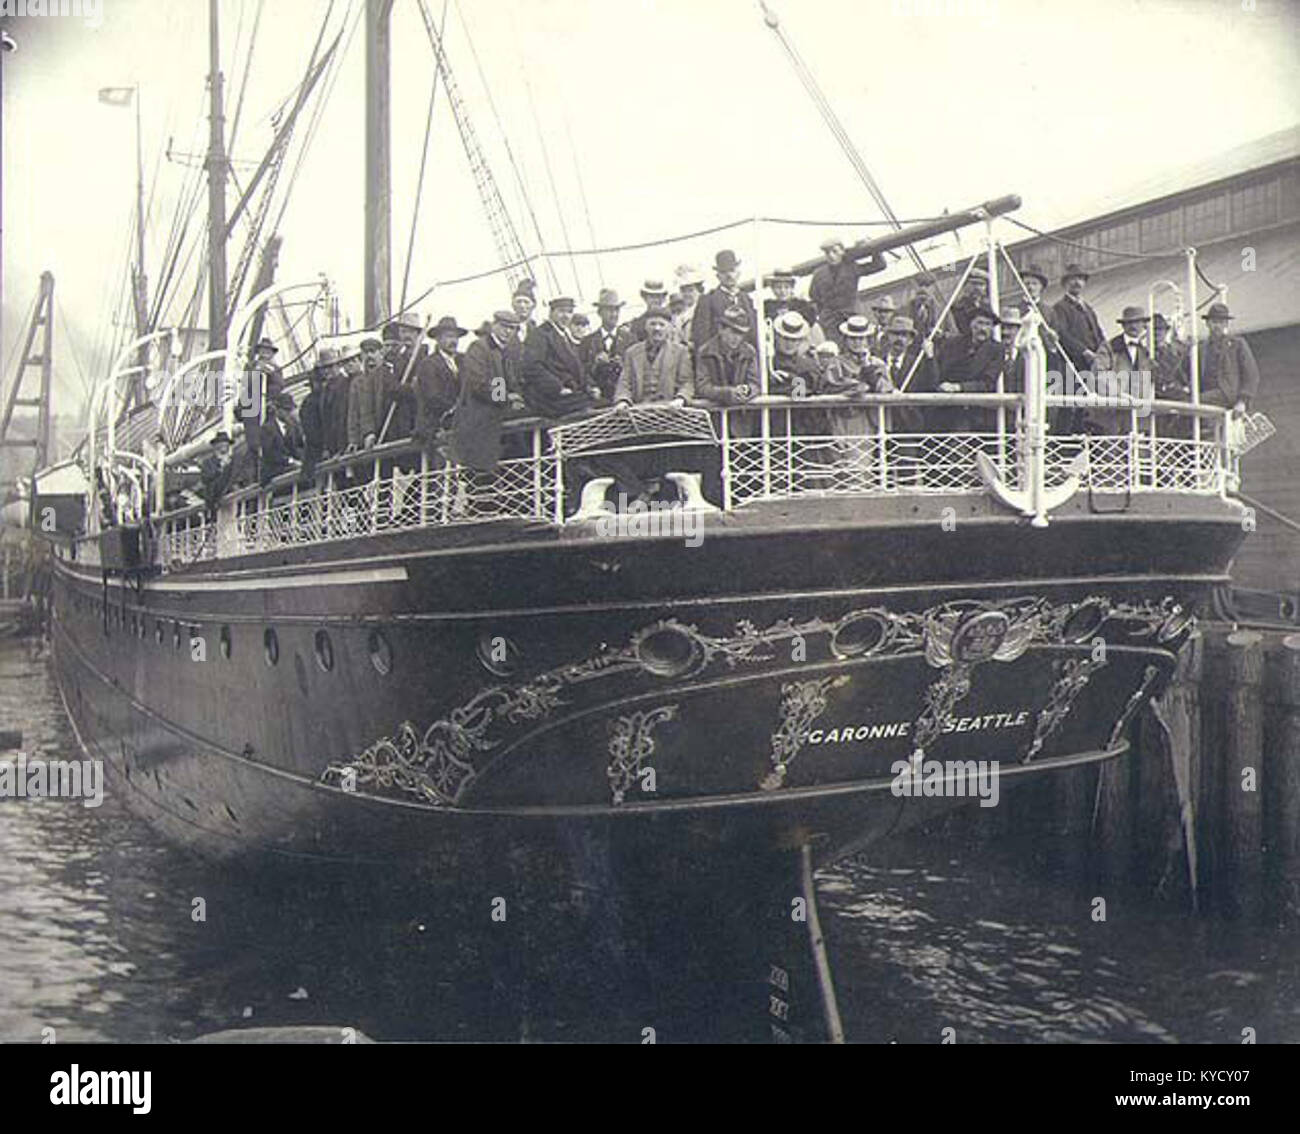 Passenger steamship GARONNE at dock, possibly Seattle, Washington, ca 1904 (HESTER 177) - Stock Image